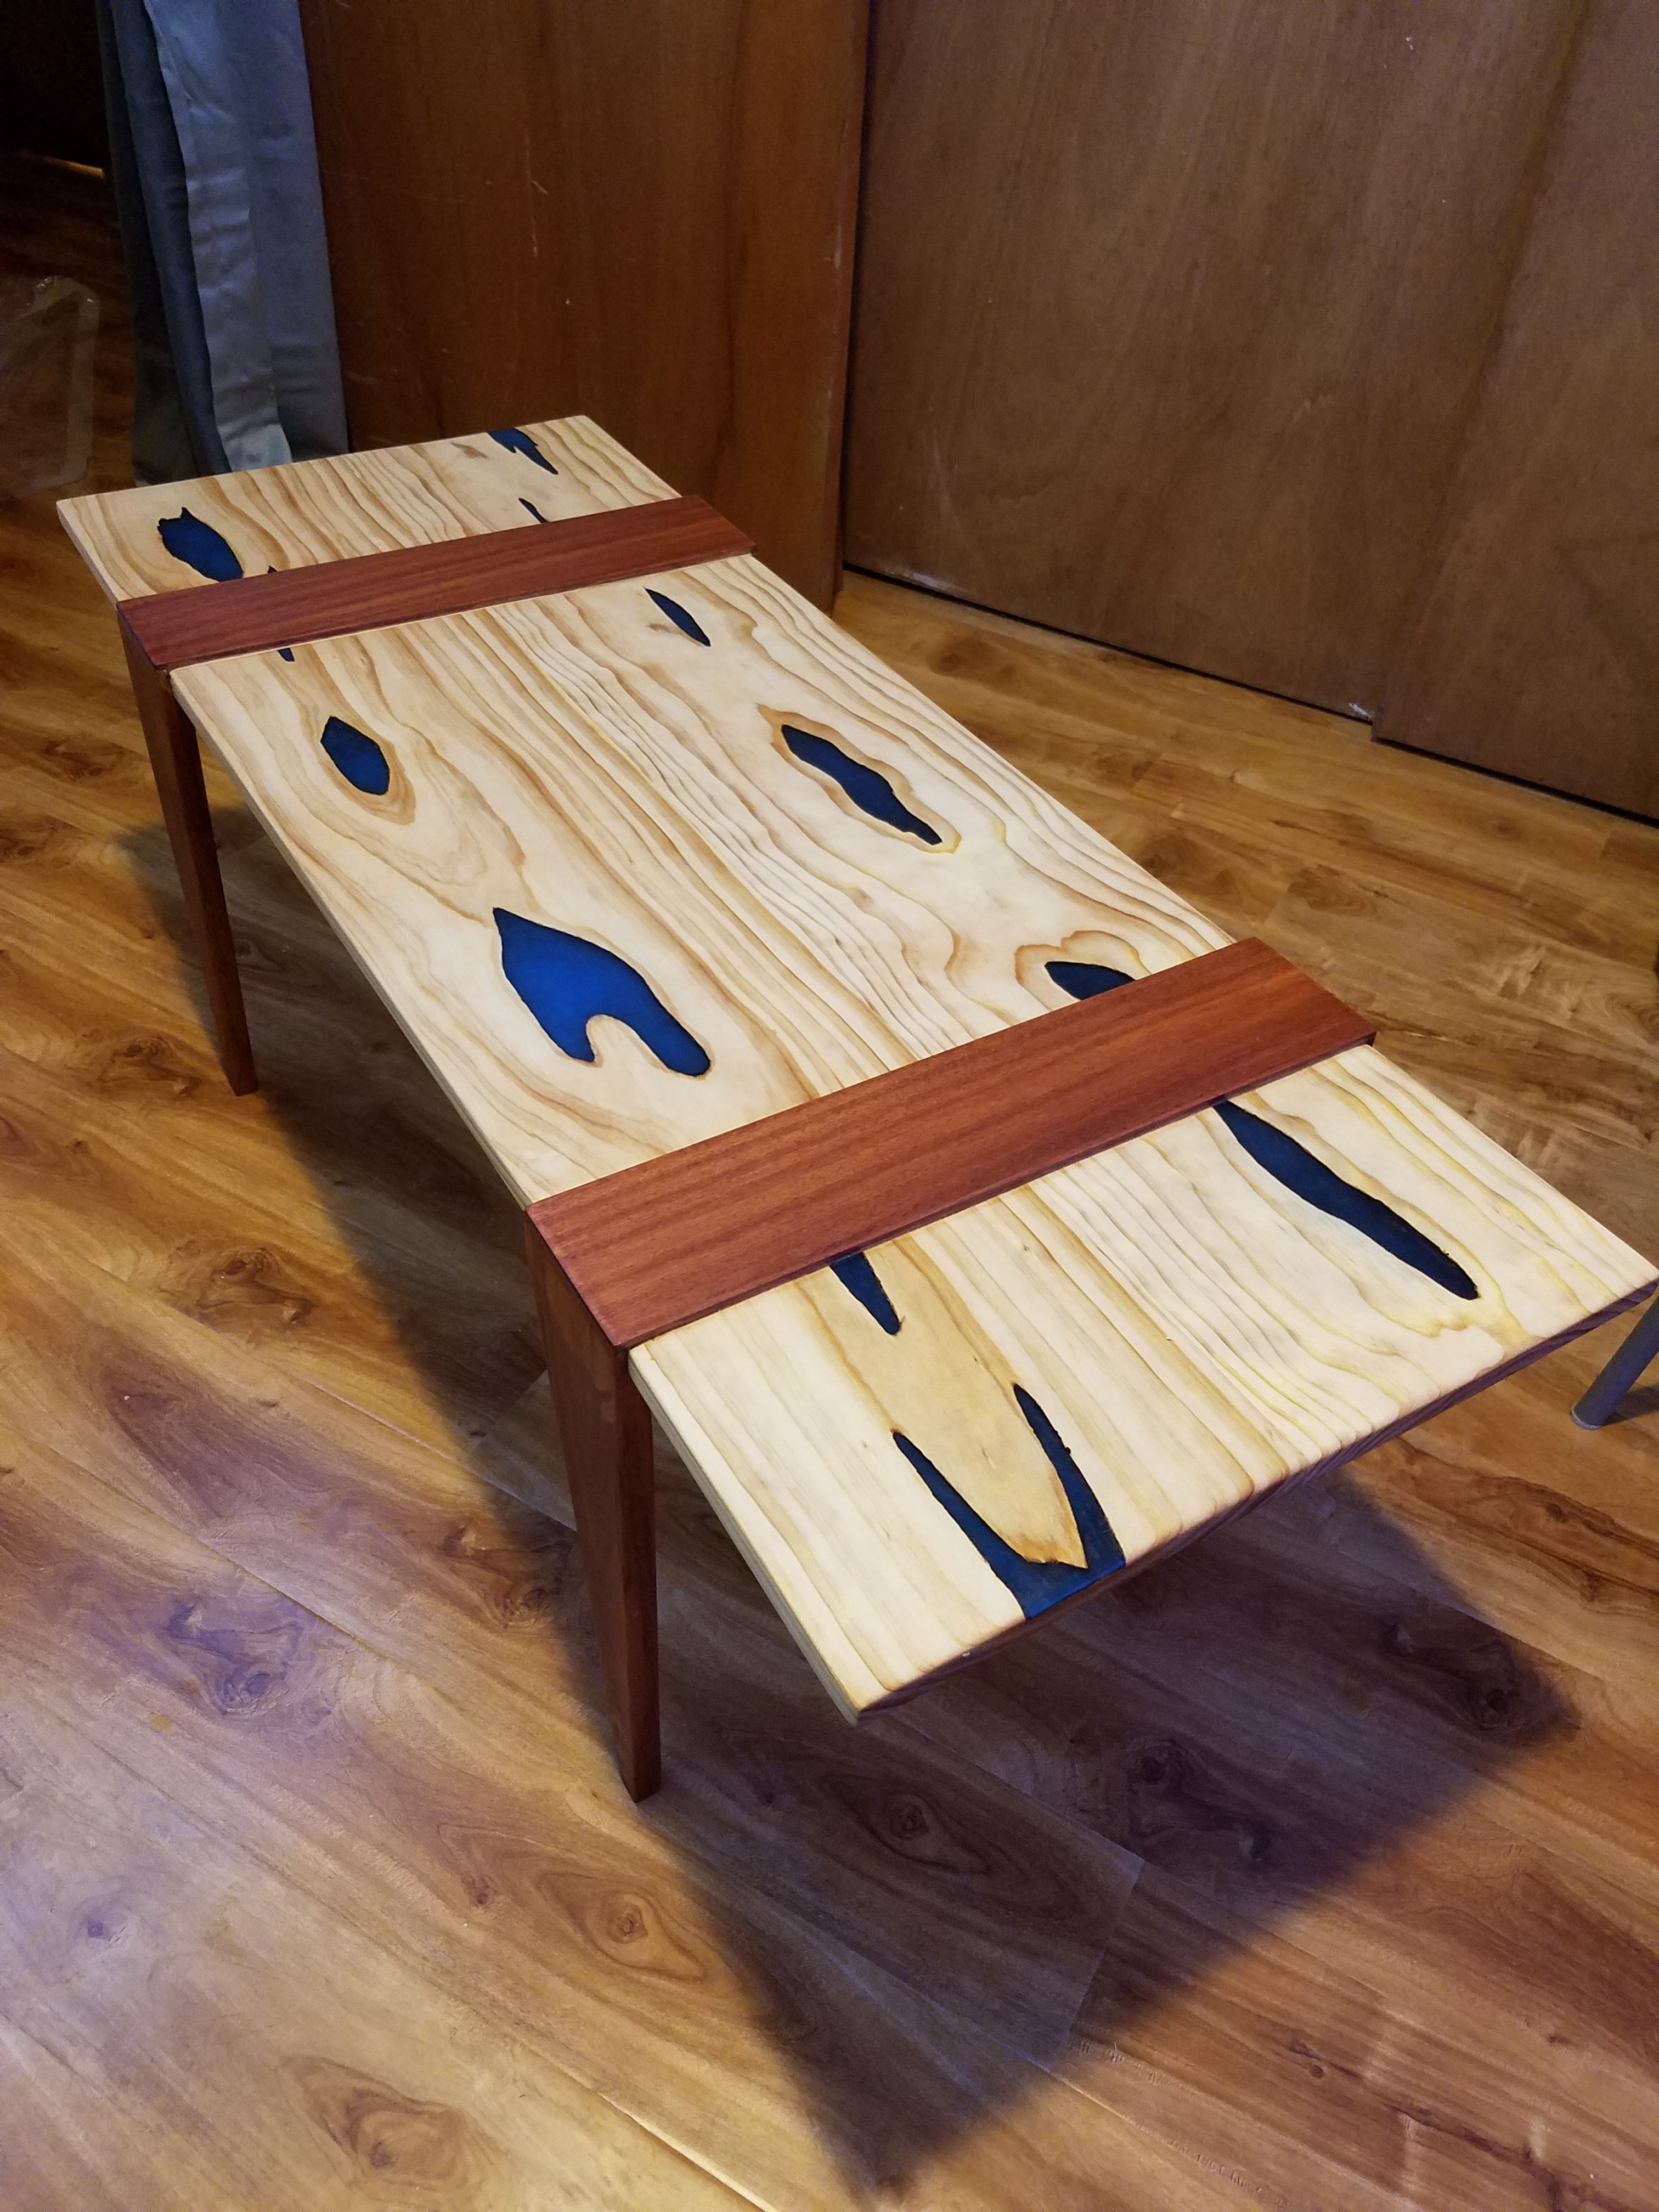 Pine Brazilian Cherry And Glow Resin Coffee Table Imgur Diy Table Top Recycled Furniture Vintage Home Decor [ 4032 x 3024 Pixel ]